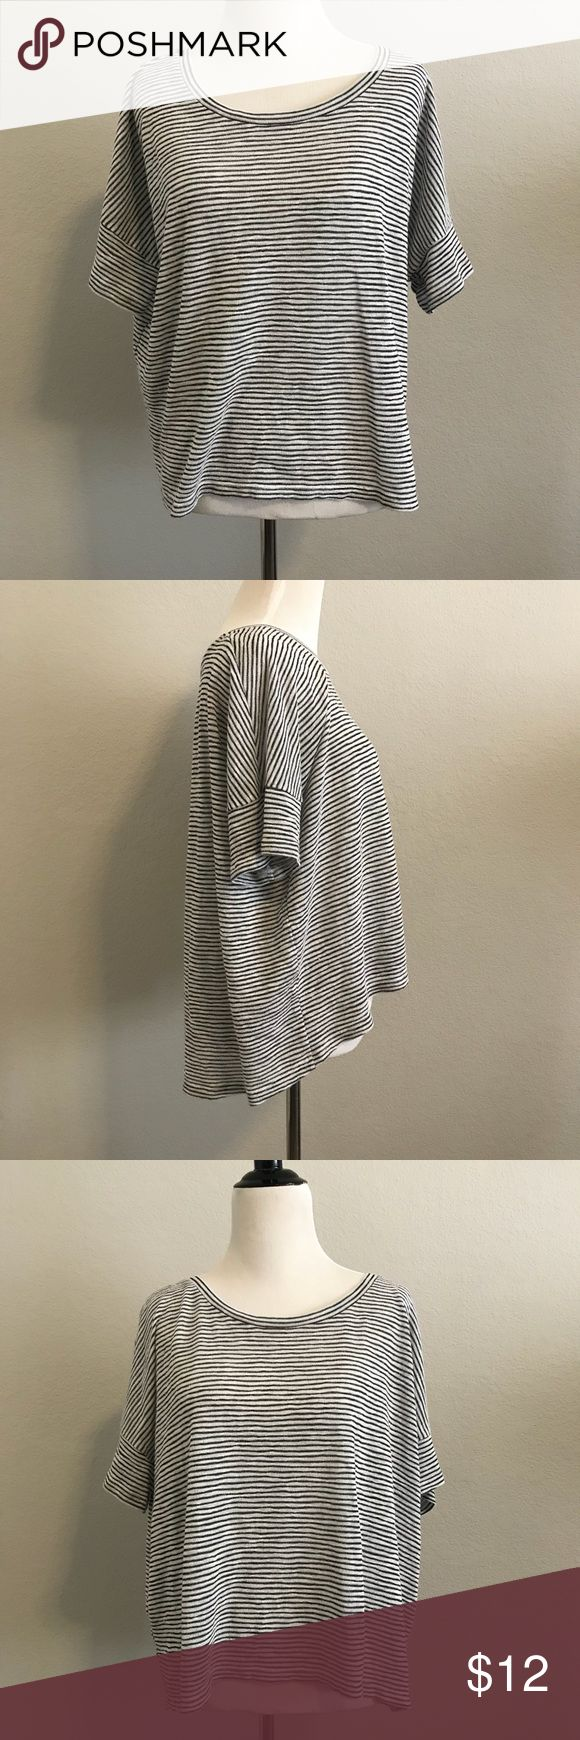 Batwing Top Comfy striped batwing top. Semi sheer. Great condition. Tops Blouses